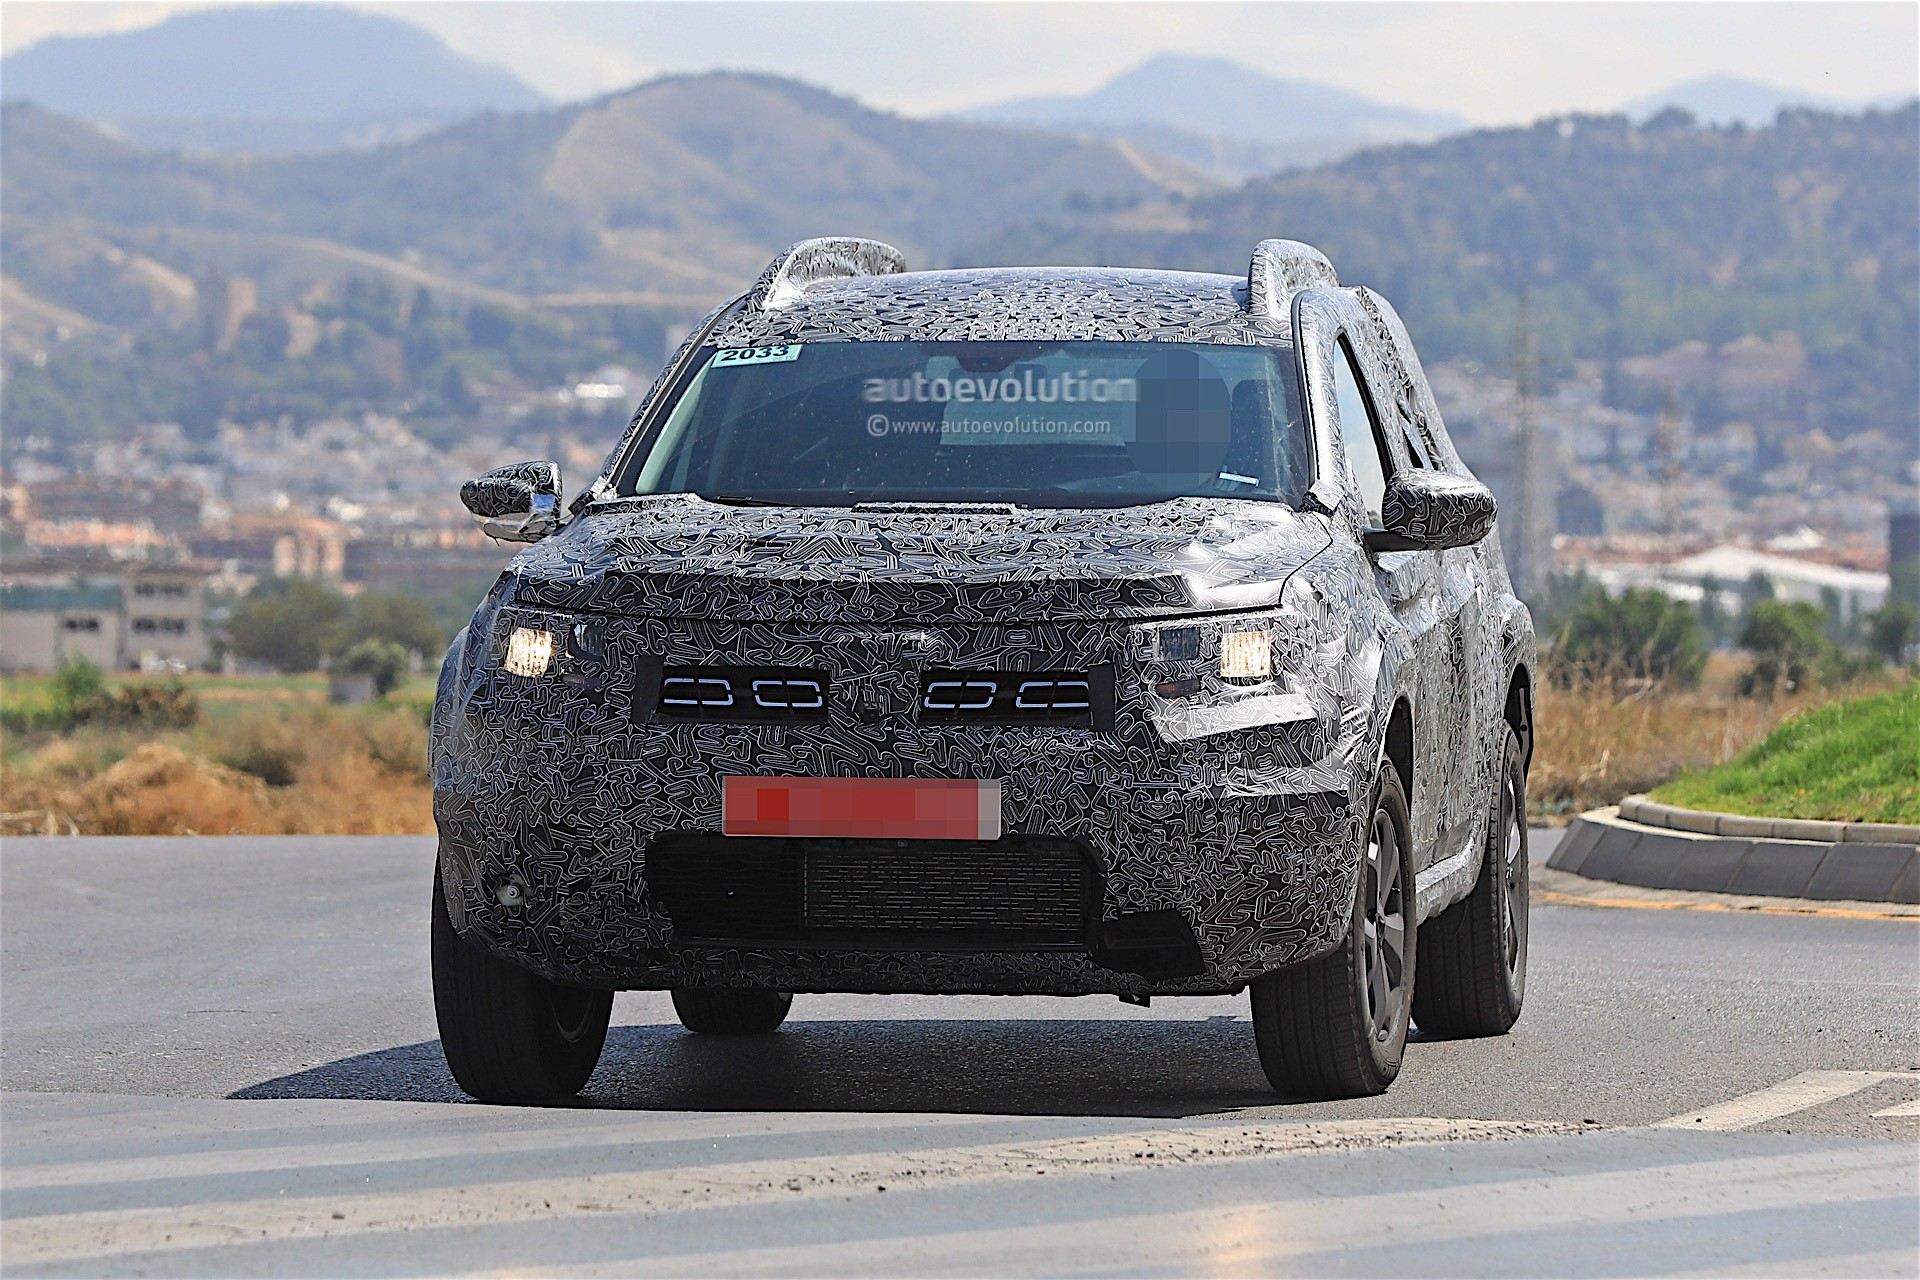 2018 dacia duster video teaser reveals nothing james may for Dacia duster 2018 uscita